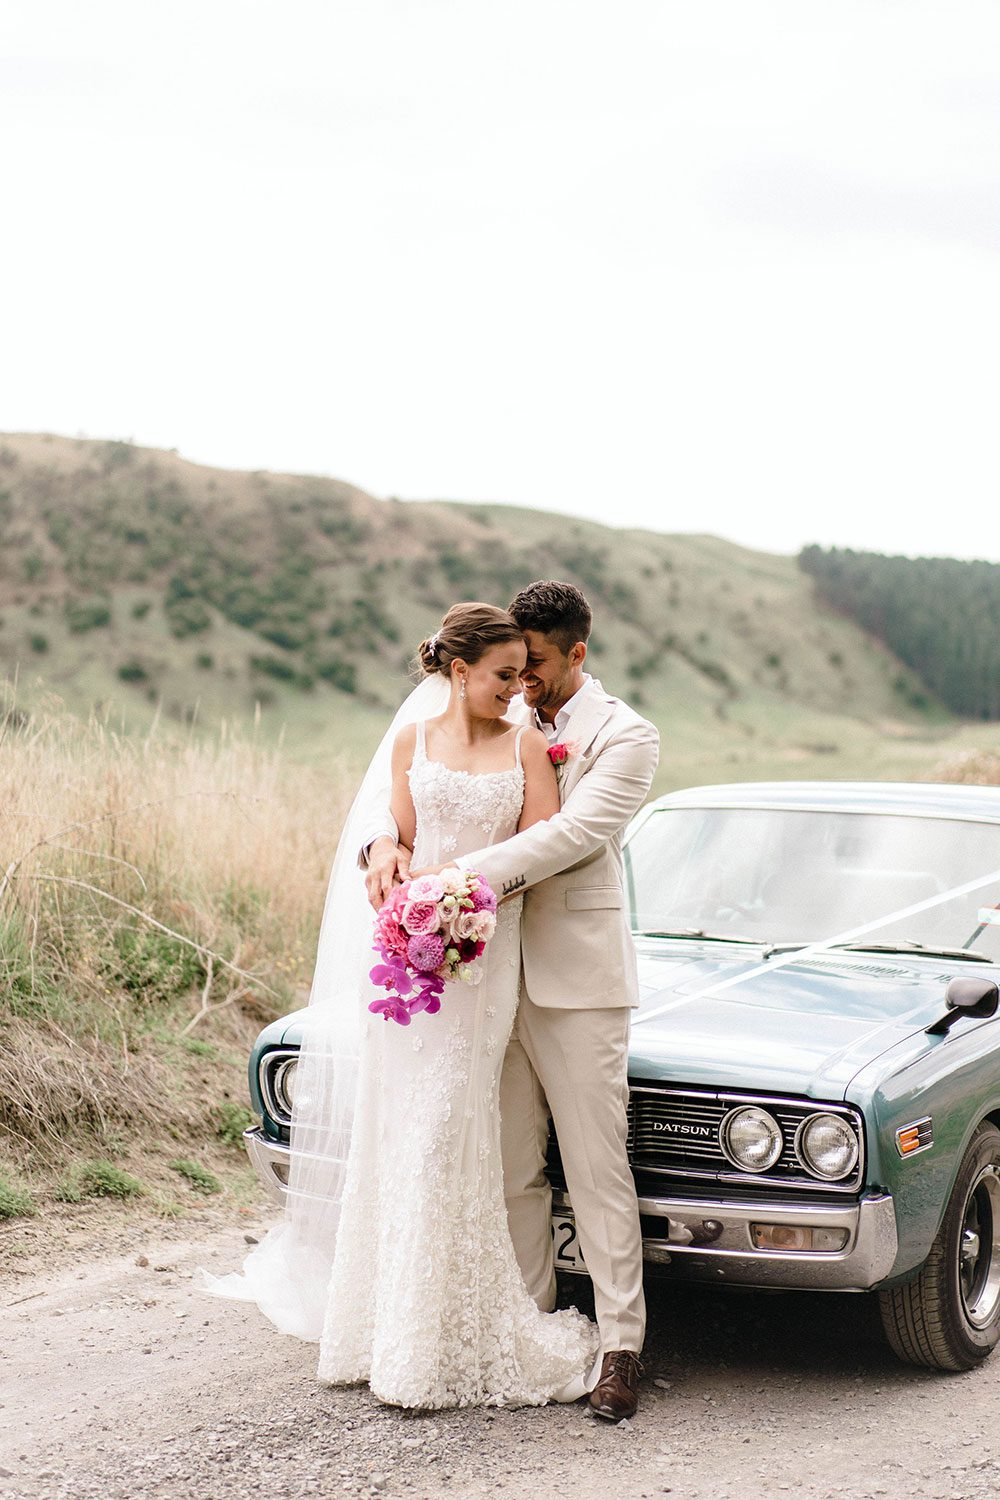 Bride wears bespoke E'More lace gown with boned bodice with hand beaded flower applique and full lace train by Auckland wedding dress maker Vinka designs - with groom in front of vintage car